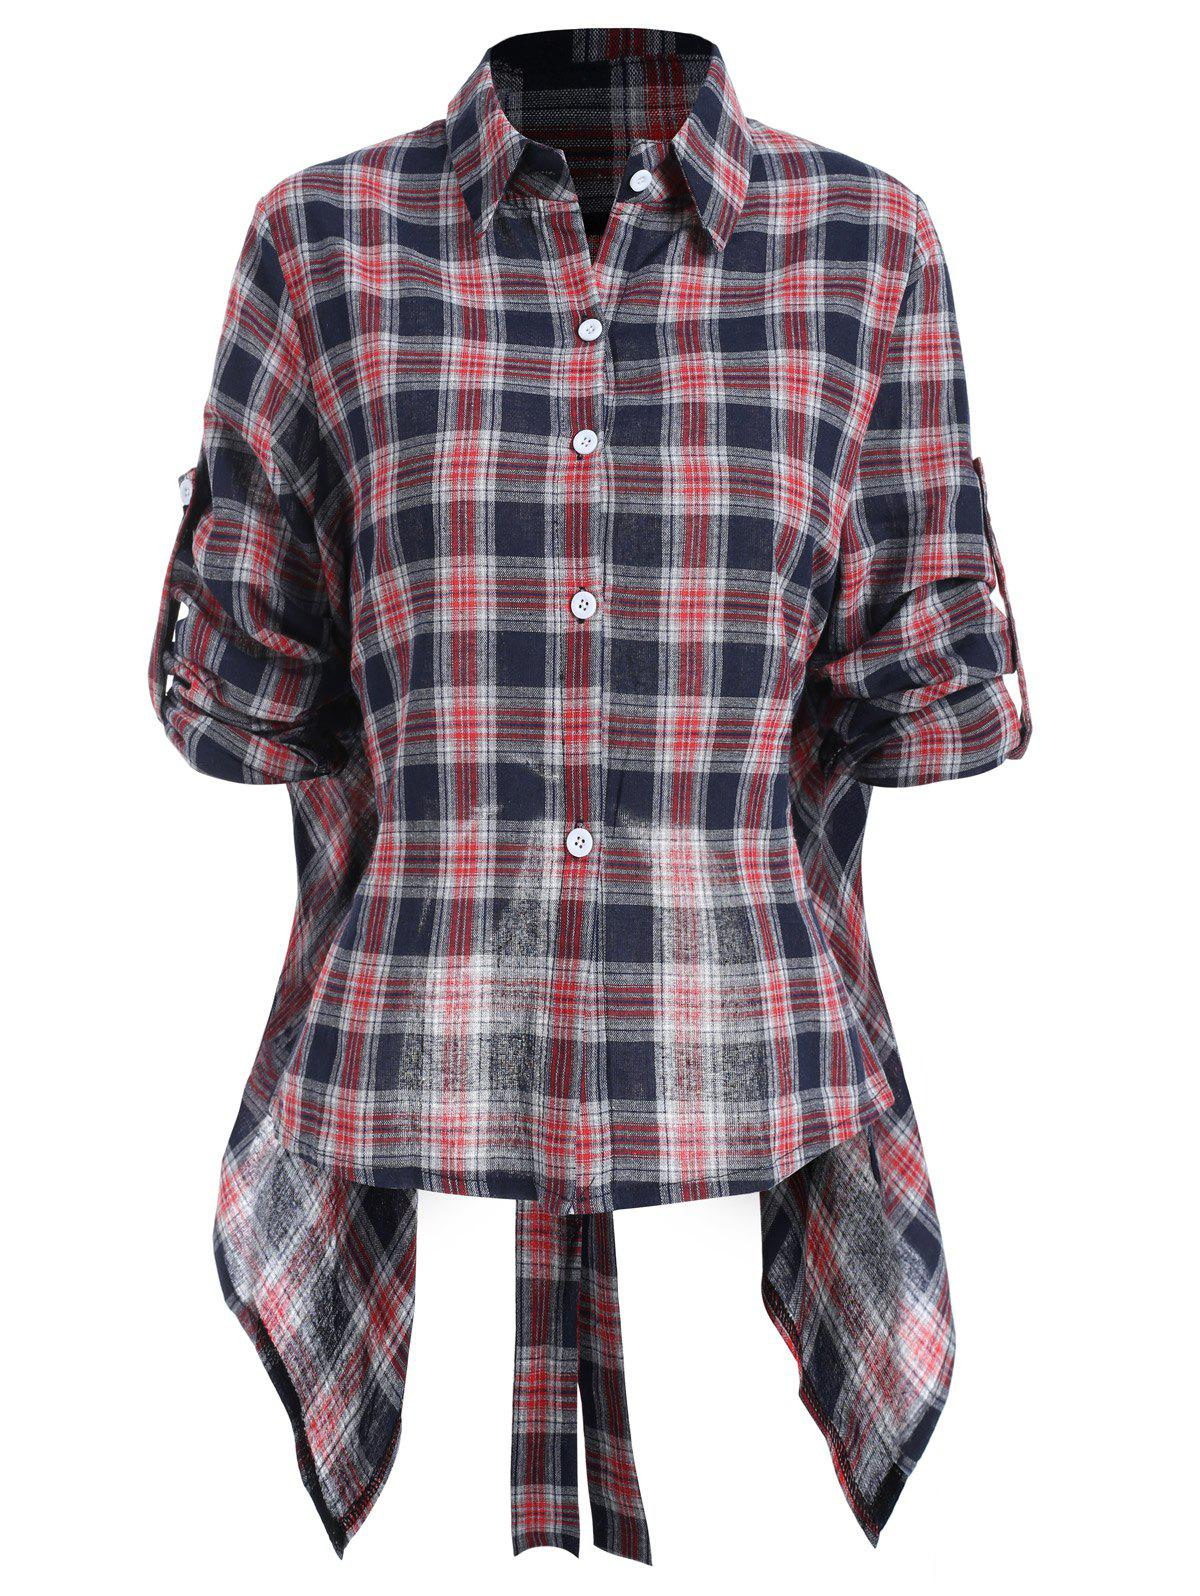 Chic Plaid Tie Back Shirt